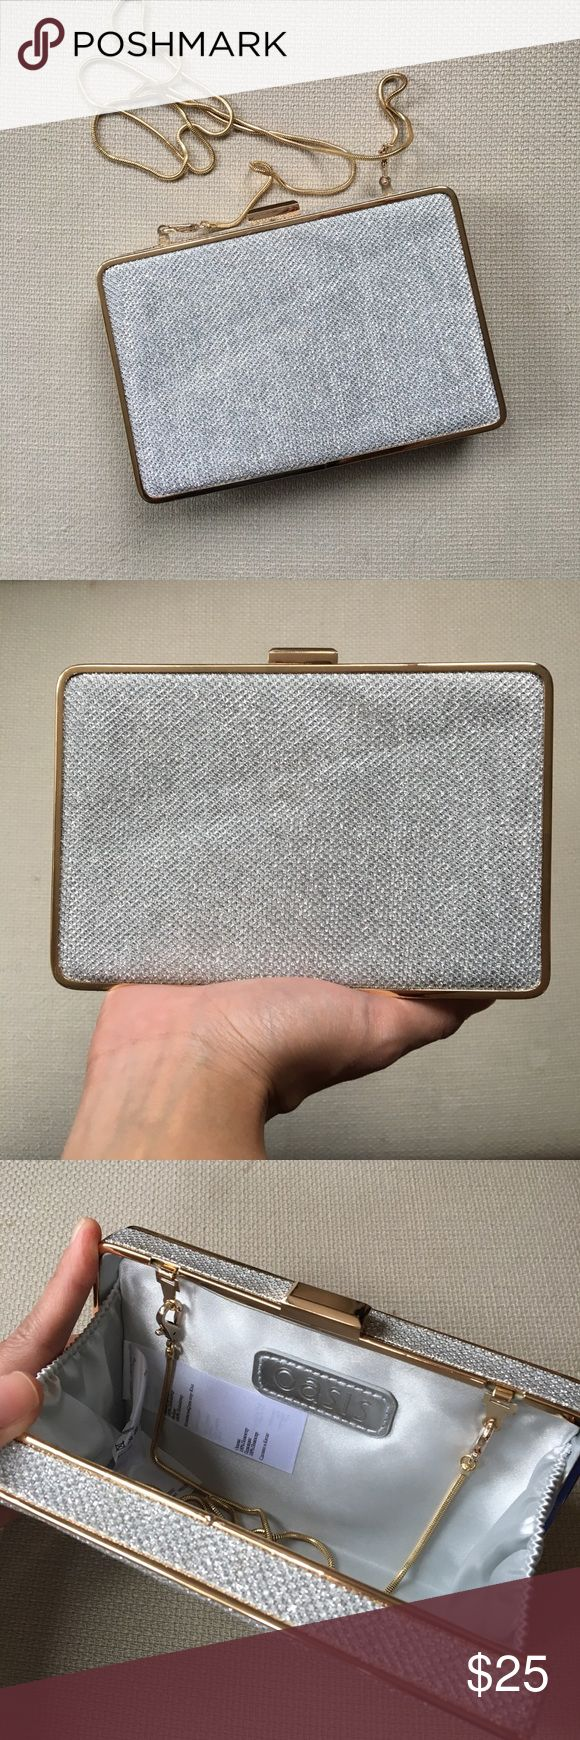 """OASIS Cheng Glitter Box Clutch in Silver New, barely used. Sparkly, textured finish. Fully lined gold-tone frame, clip-clasp fastening. Optional snake chain shoulder strap. Polyester; 4""""H / 7""""W / 1""""D Oasis  Bags Clutches & Wristlets"""